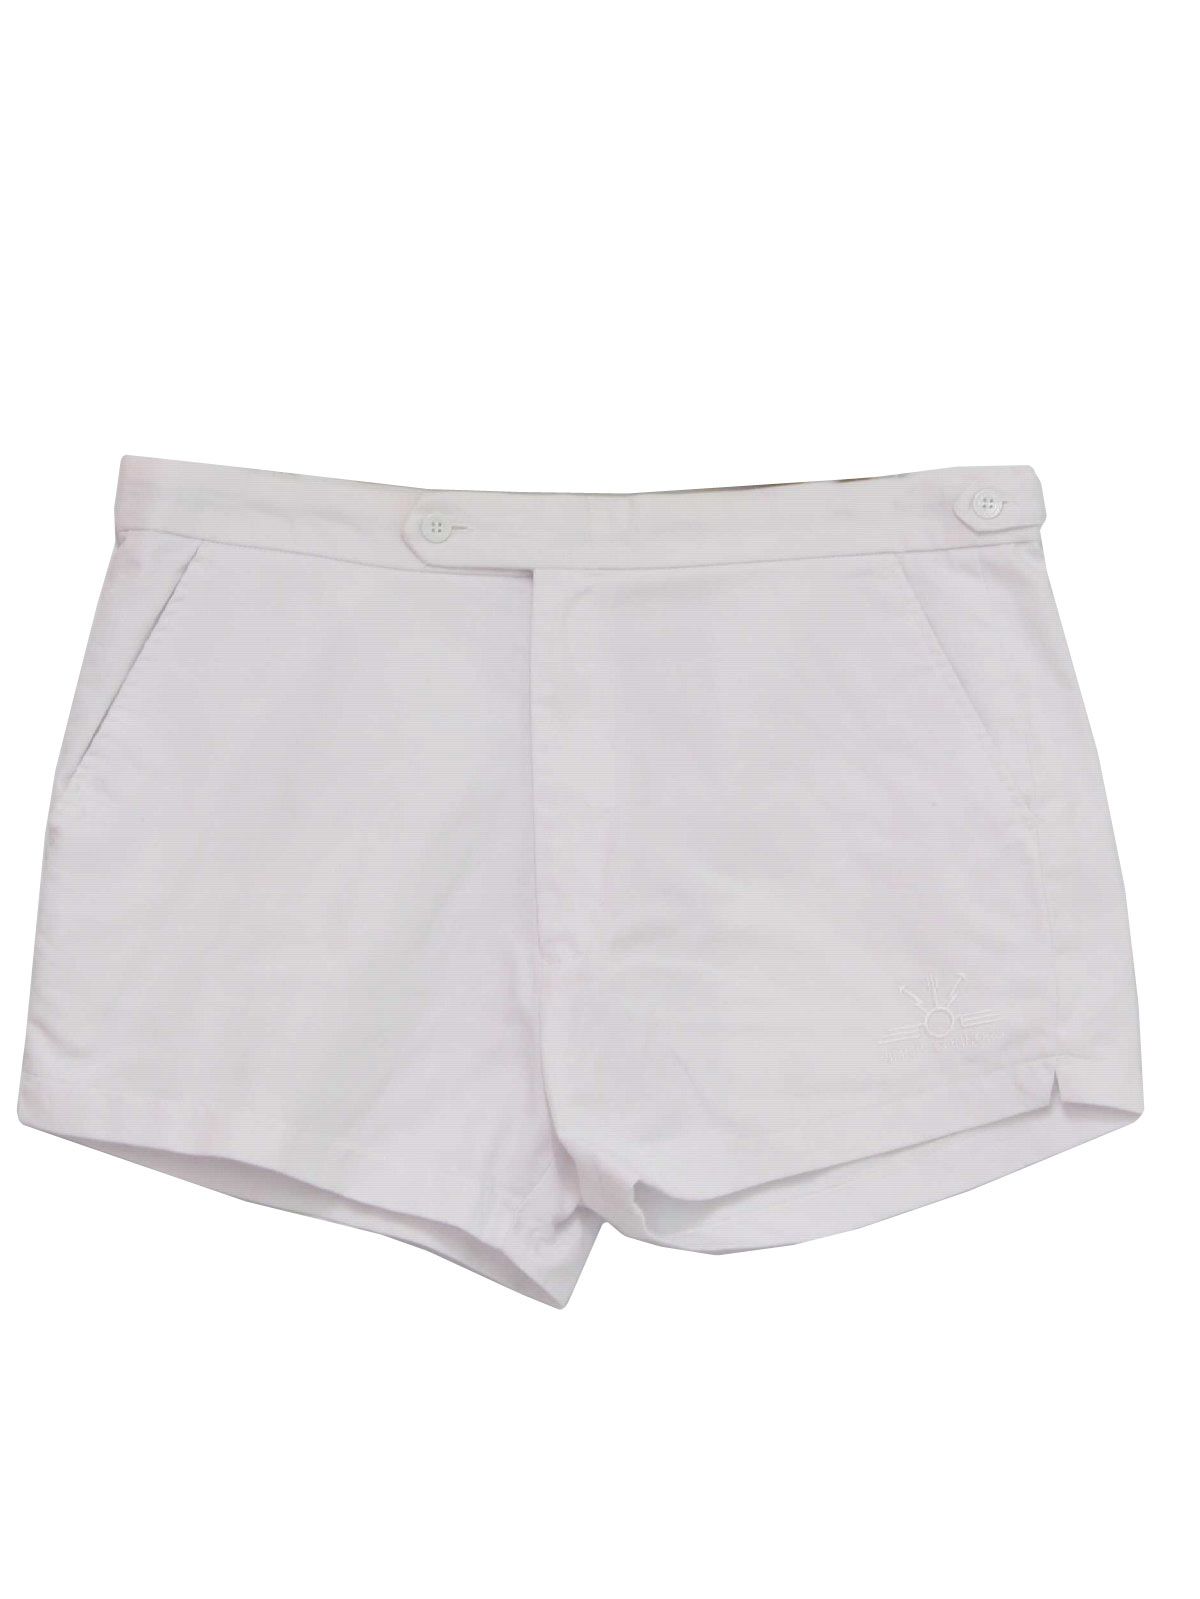 1980s Vintage Shorts: 80s -Jimmy Connors- Mens white polyester ...